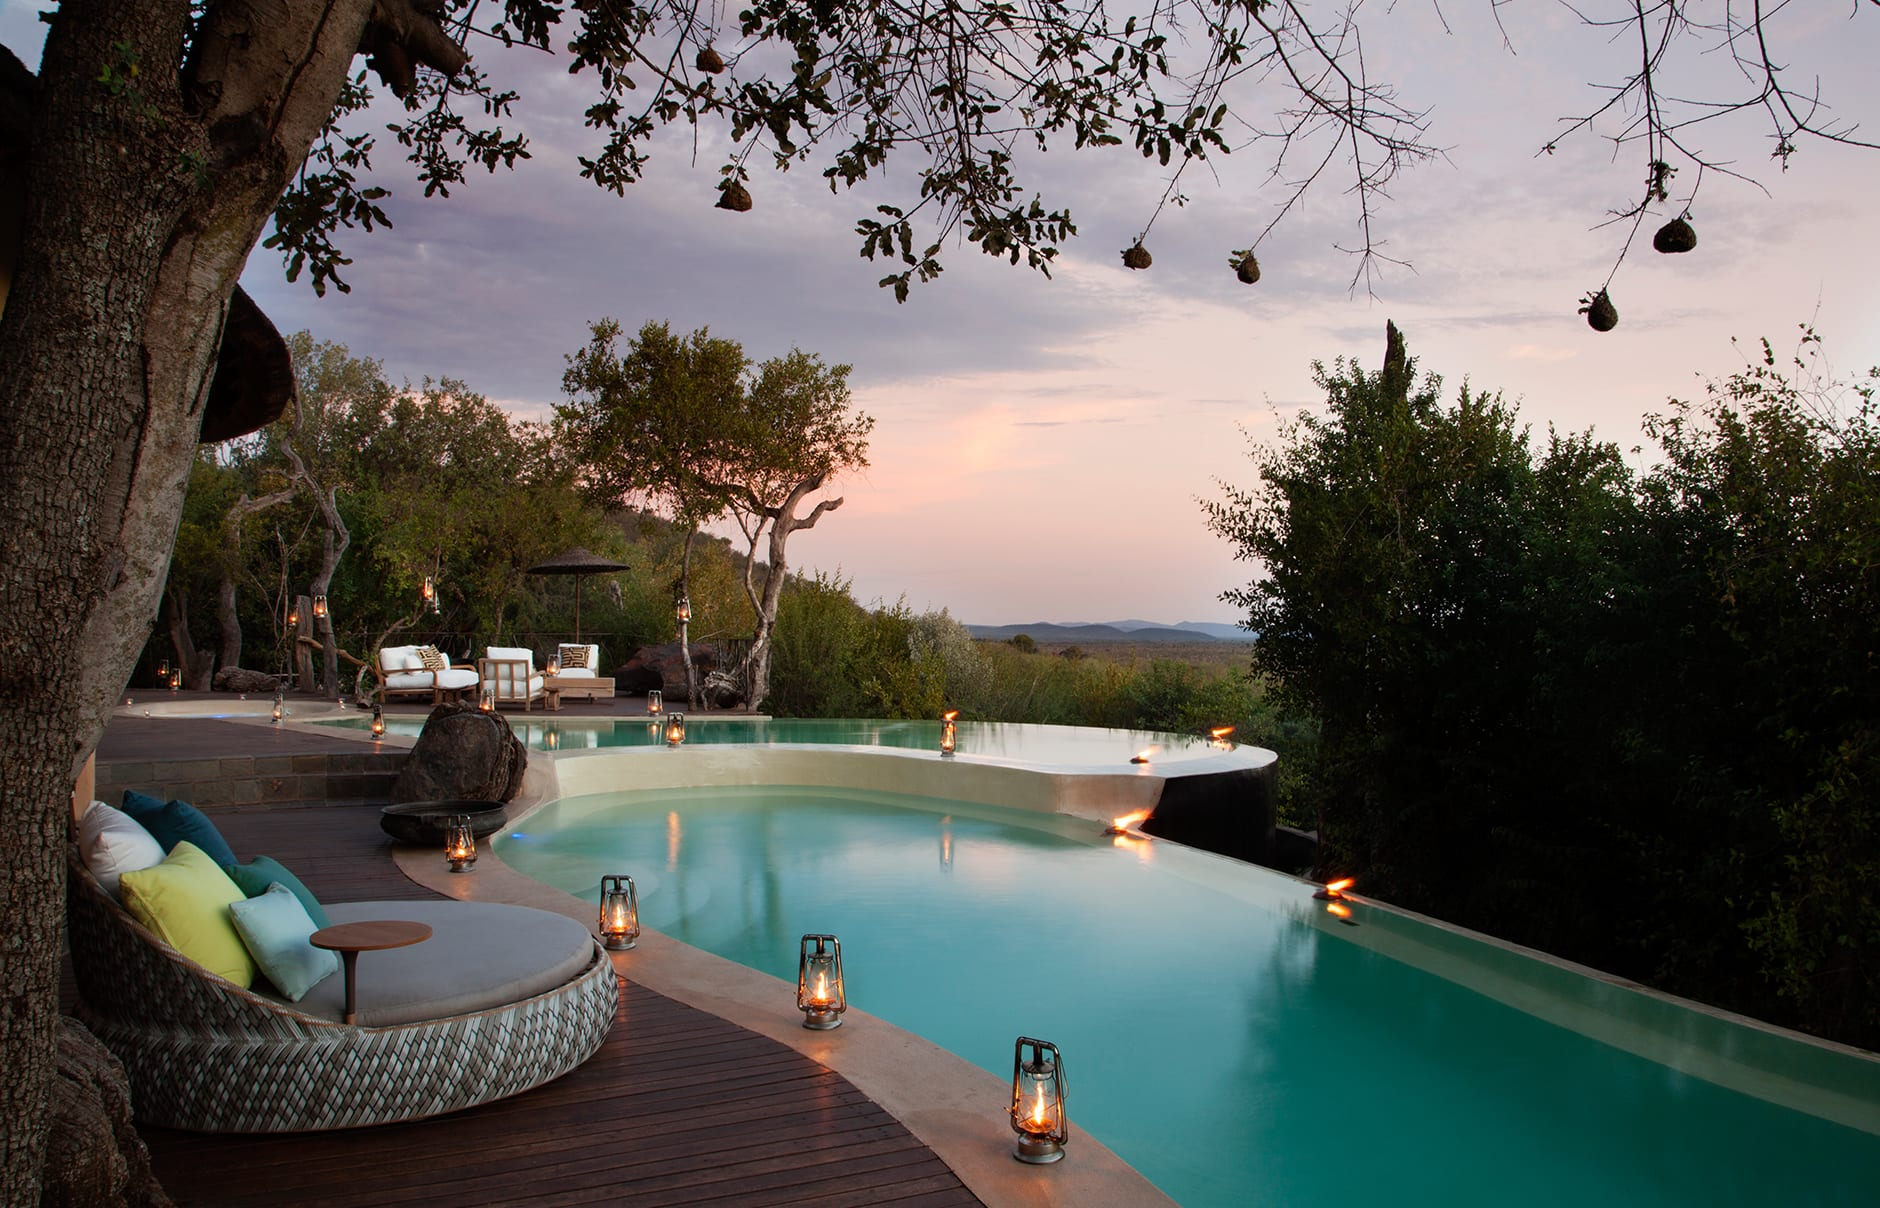 Molori Safari Lodge, South Africa. © Molori Safari Lodge